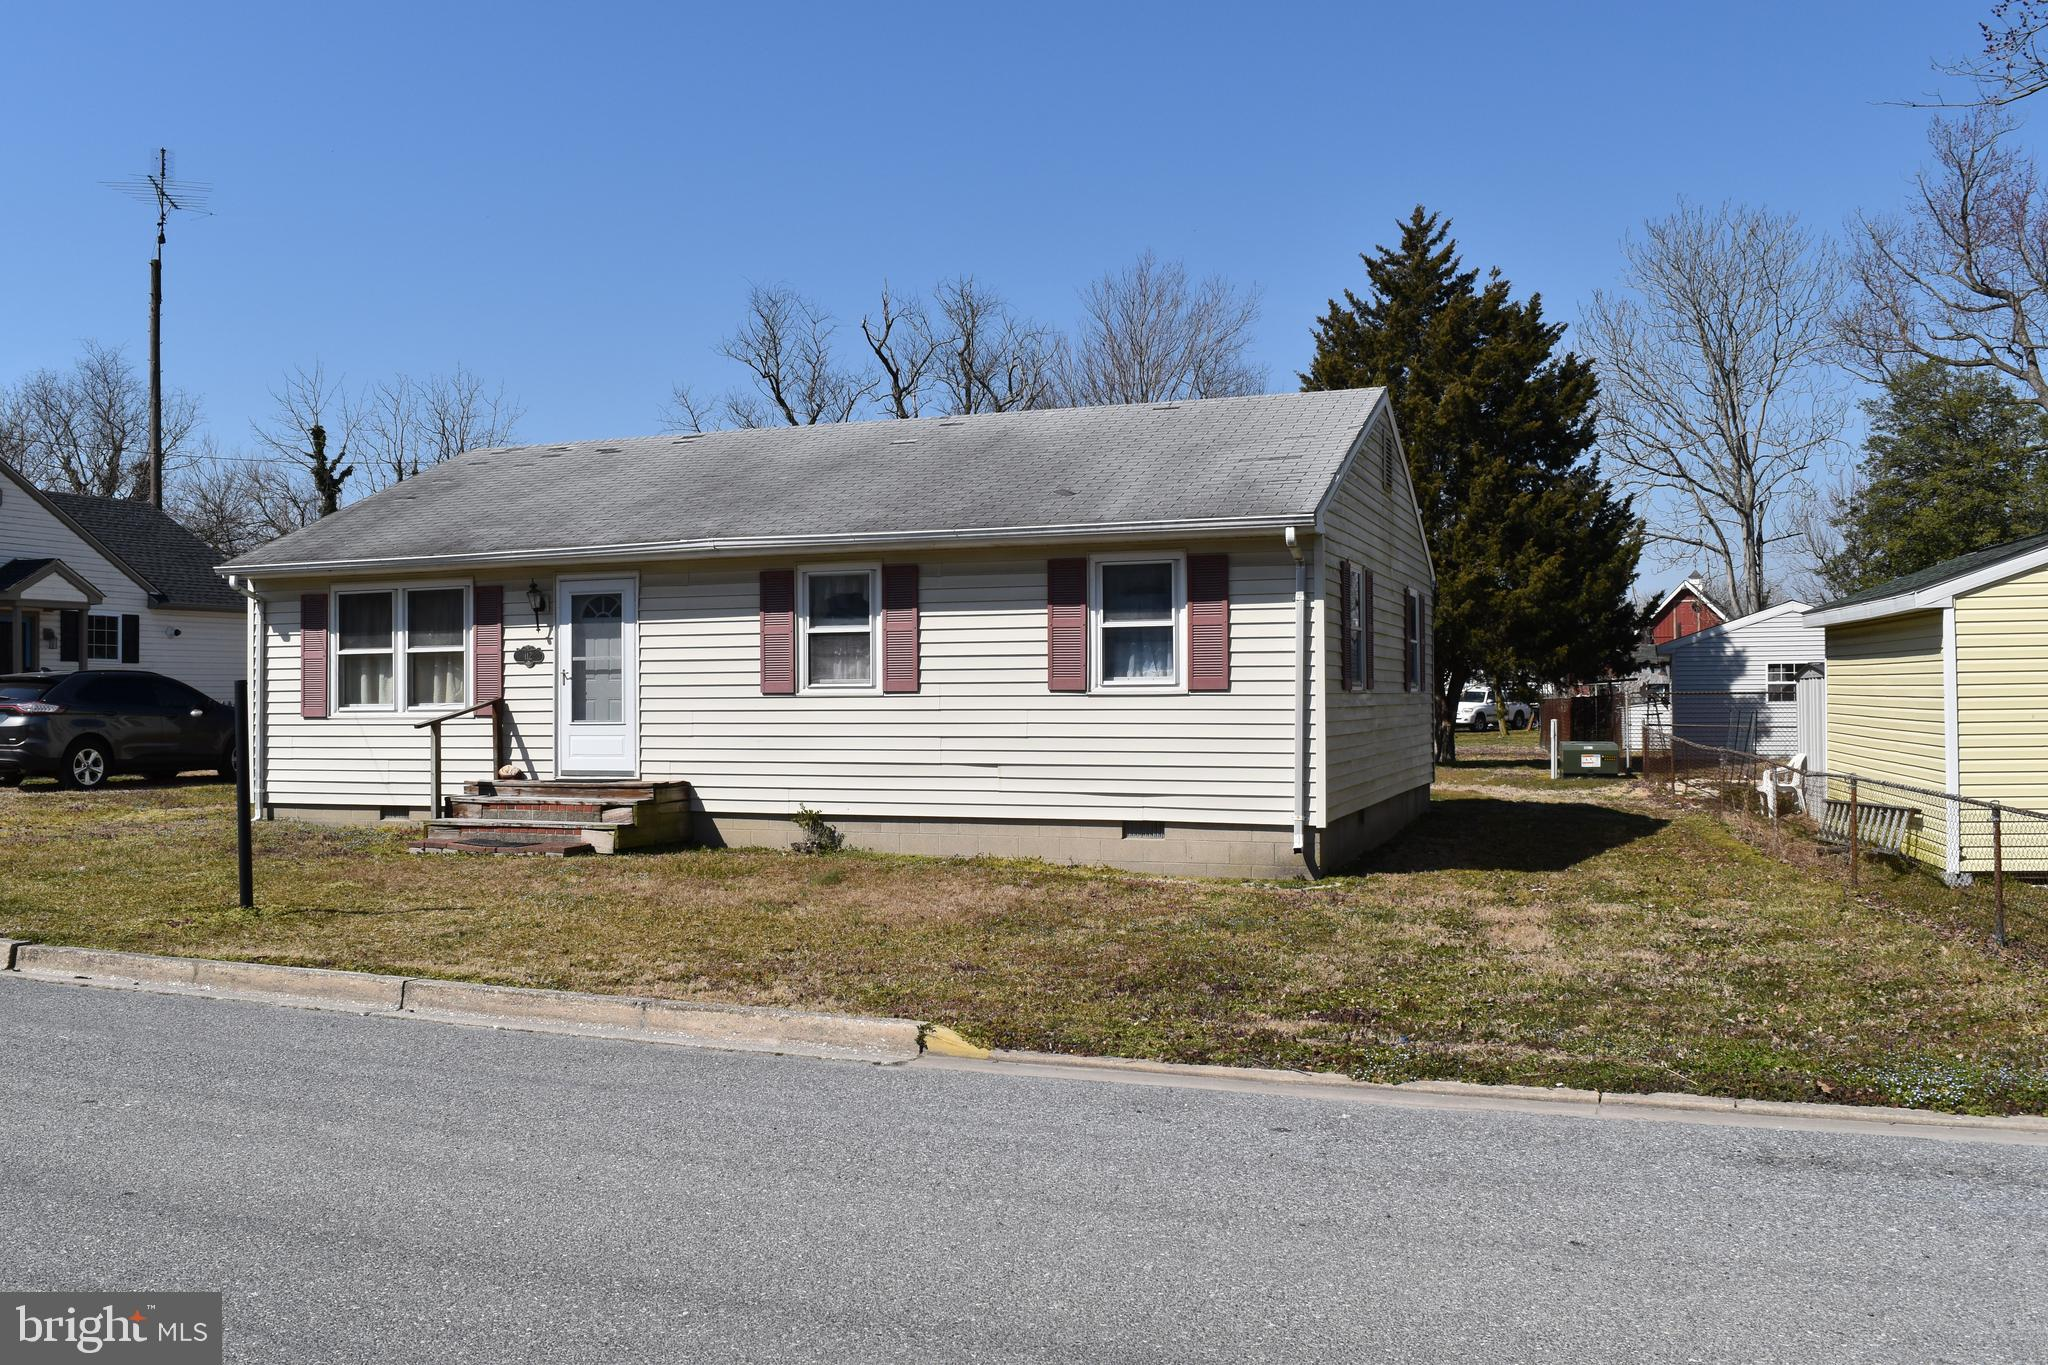 Rancher with 3 Bedrooms and 1 Bath and Eat in kitchen in the city limits of Hurlock, Maryland.  It h